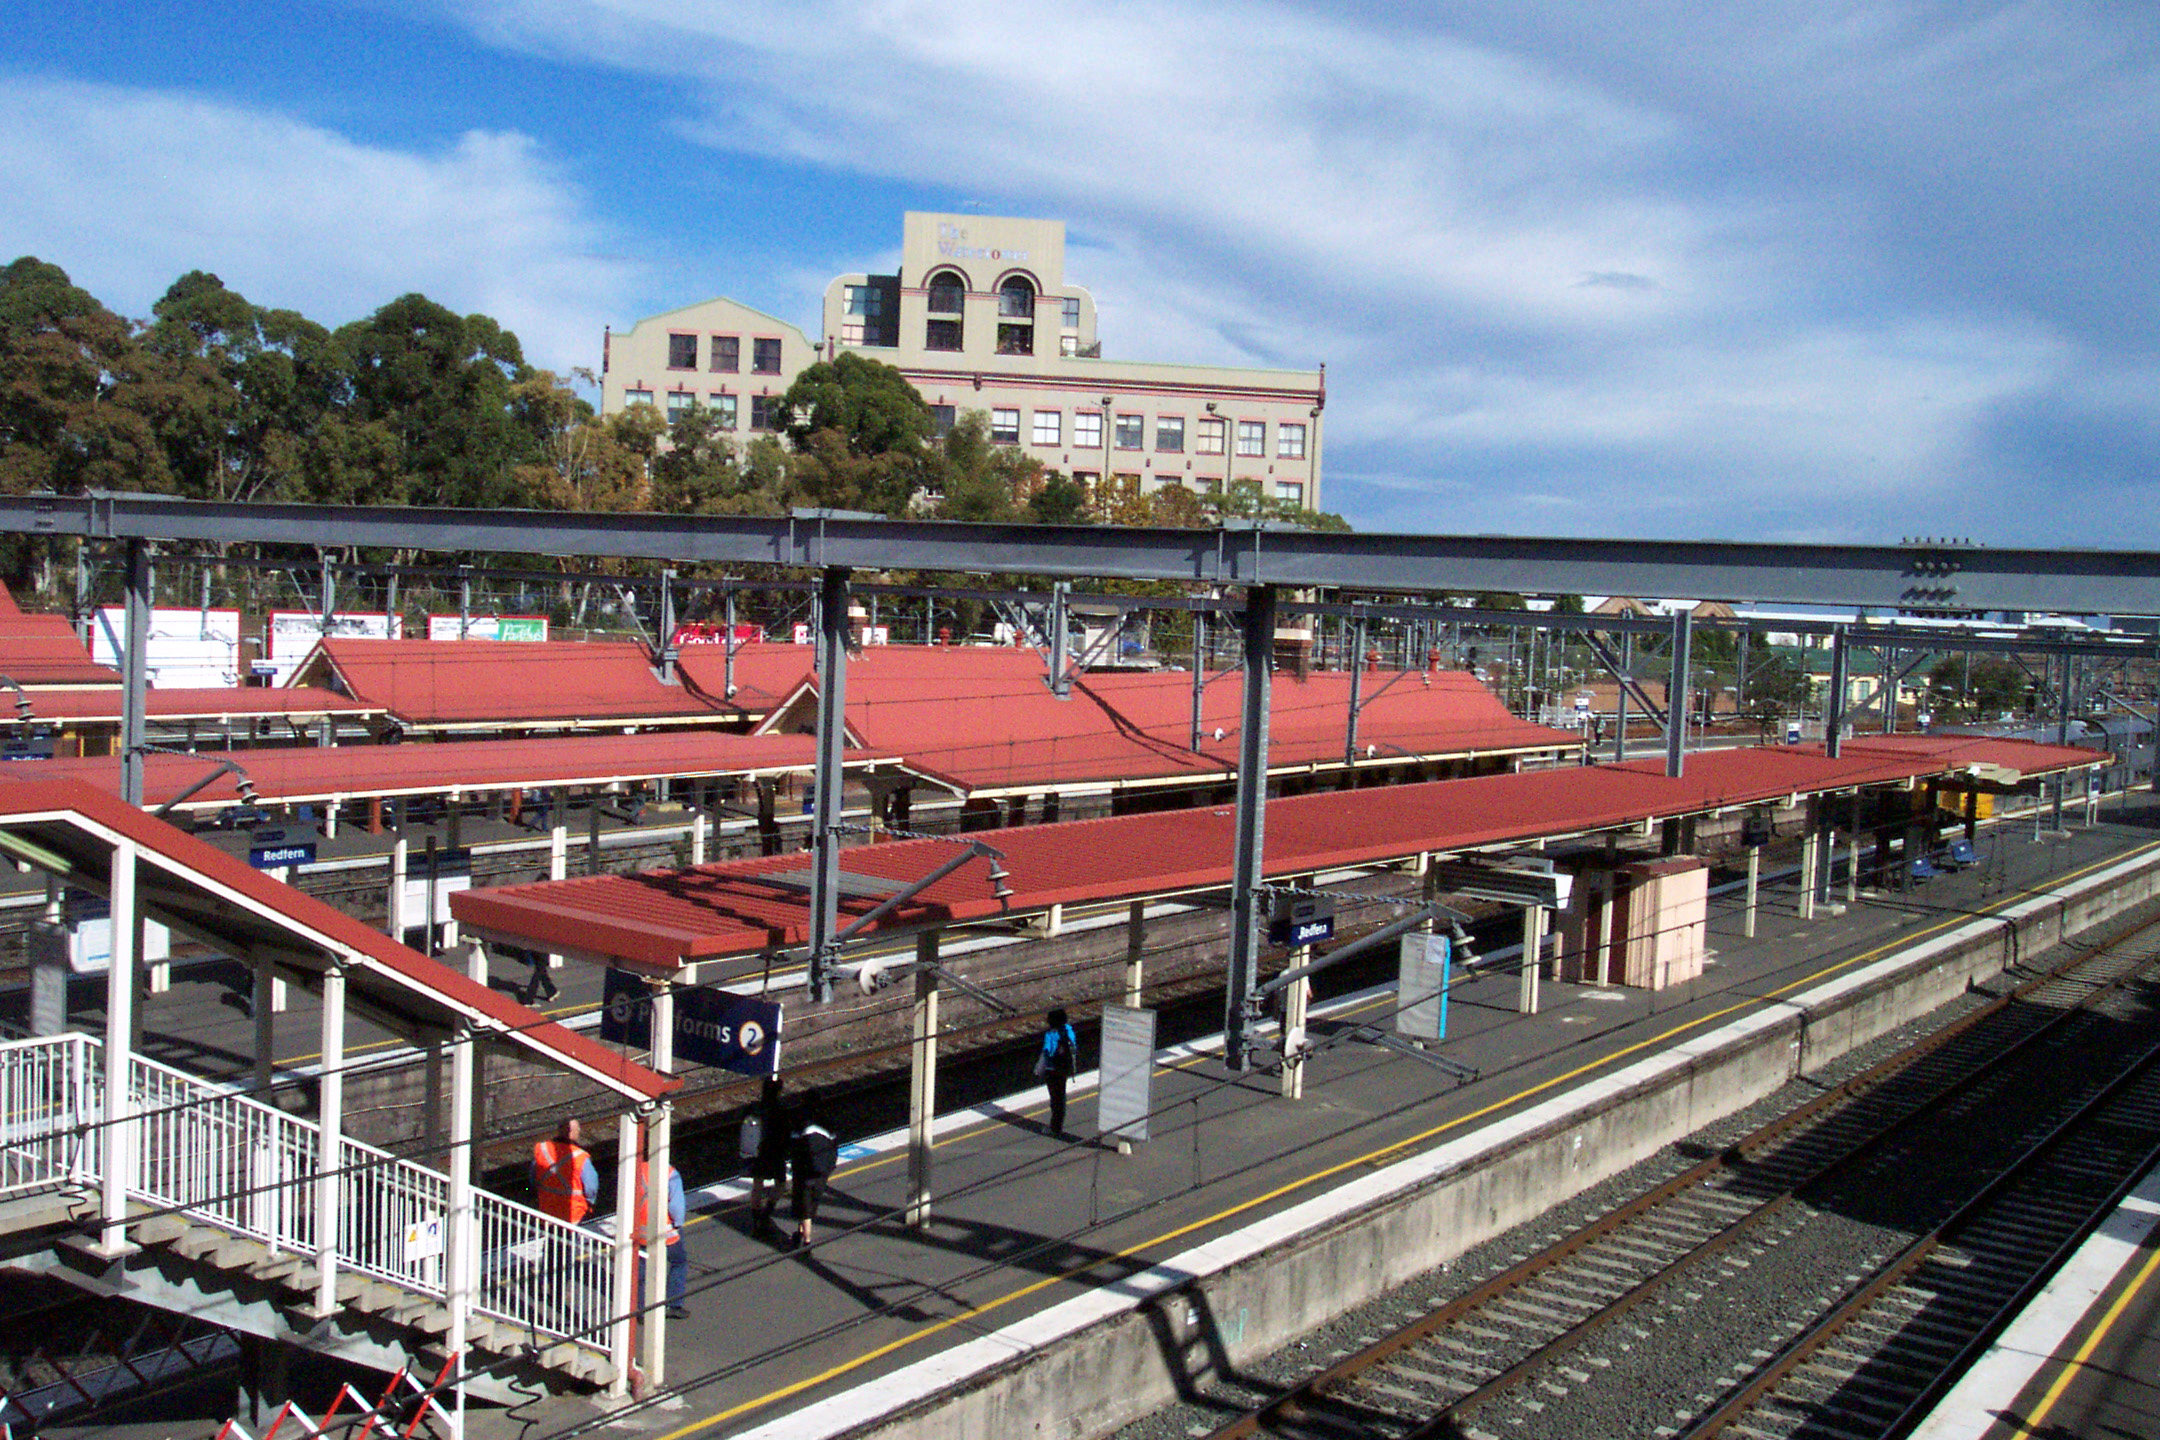 Redfern New South Wales